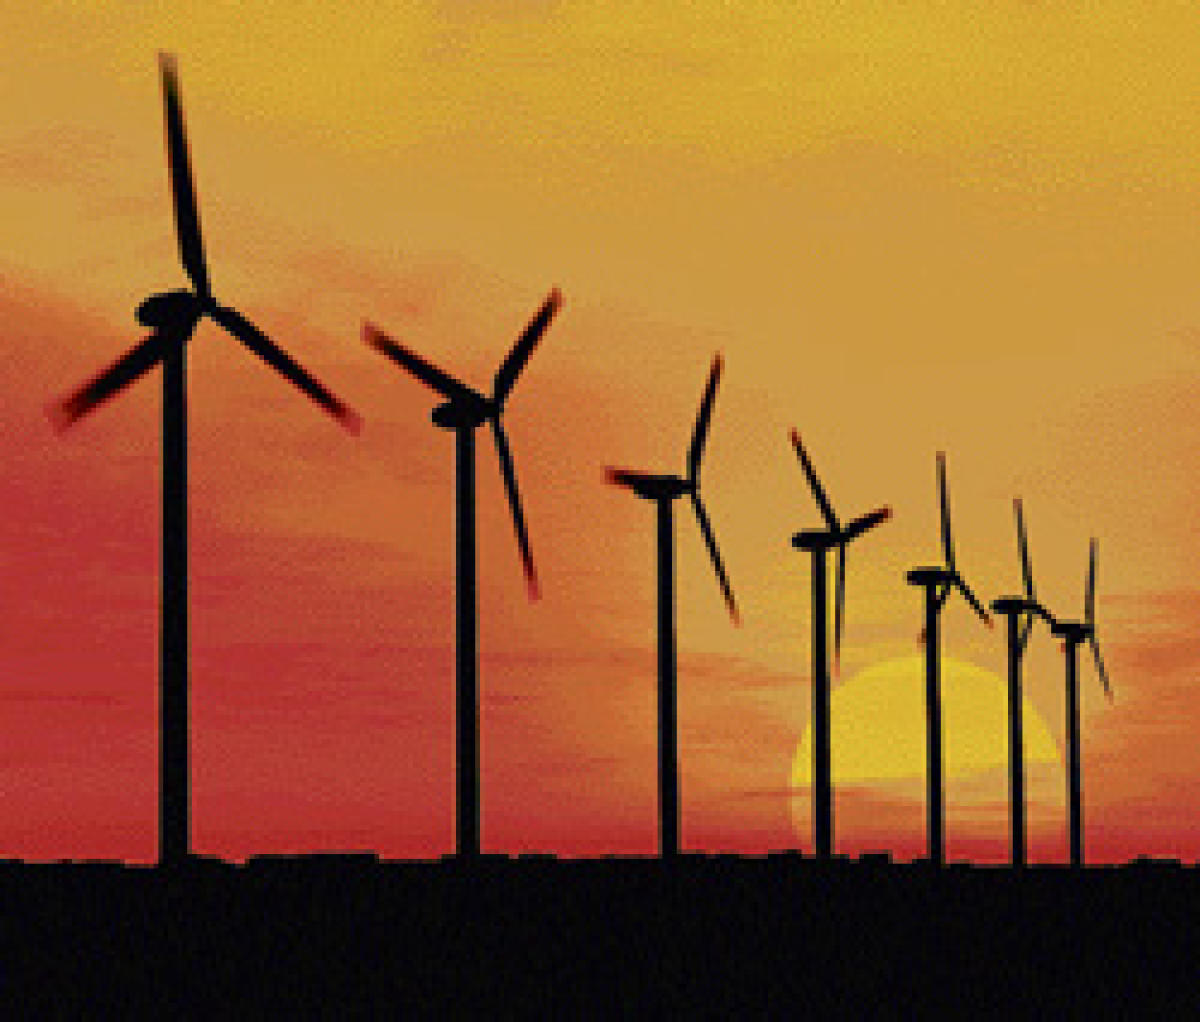 The majority of wind turbines are being built in southern and western India to best capture the winds of the summer Indian monsoon, the seasonal weather pattern then brings heavy rains and winds to the subcontinent. File photo